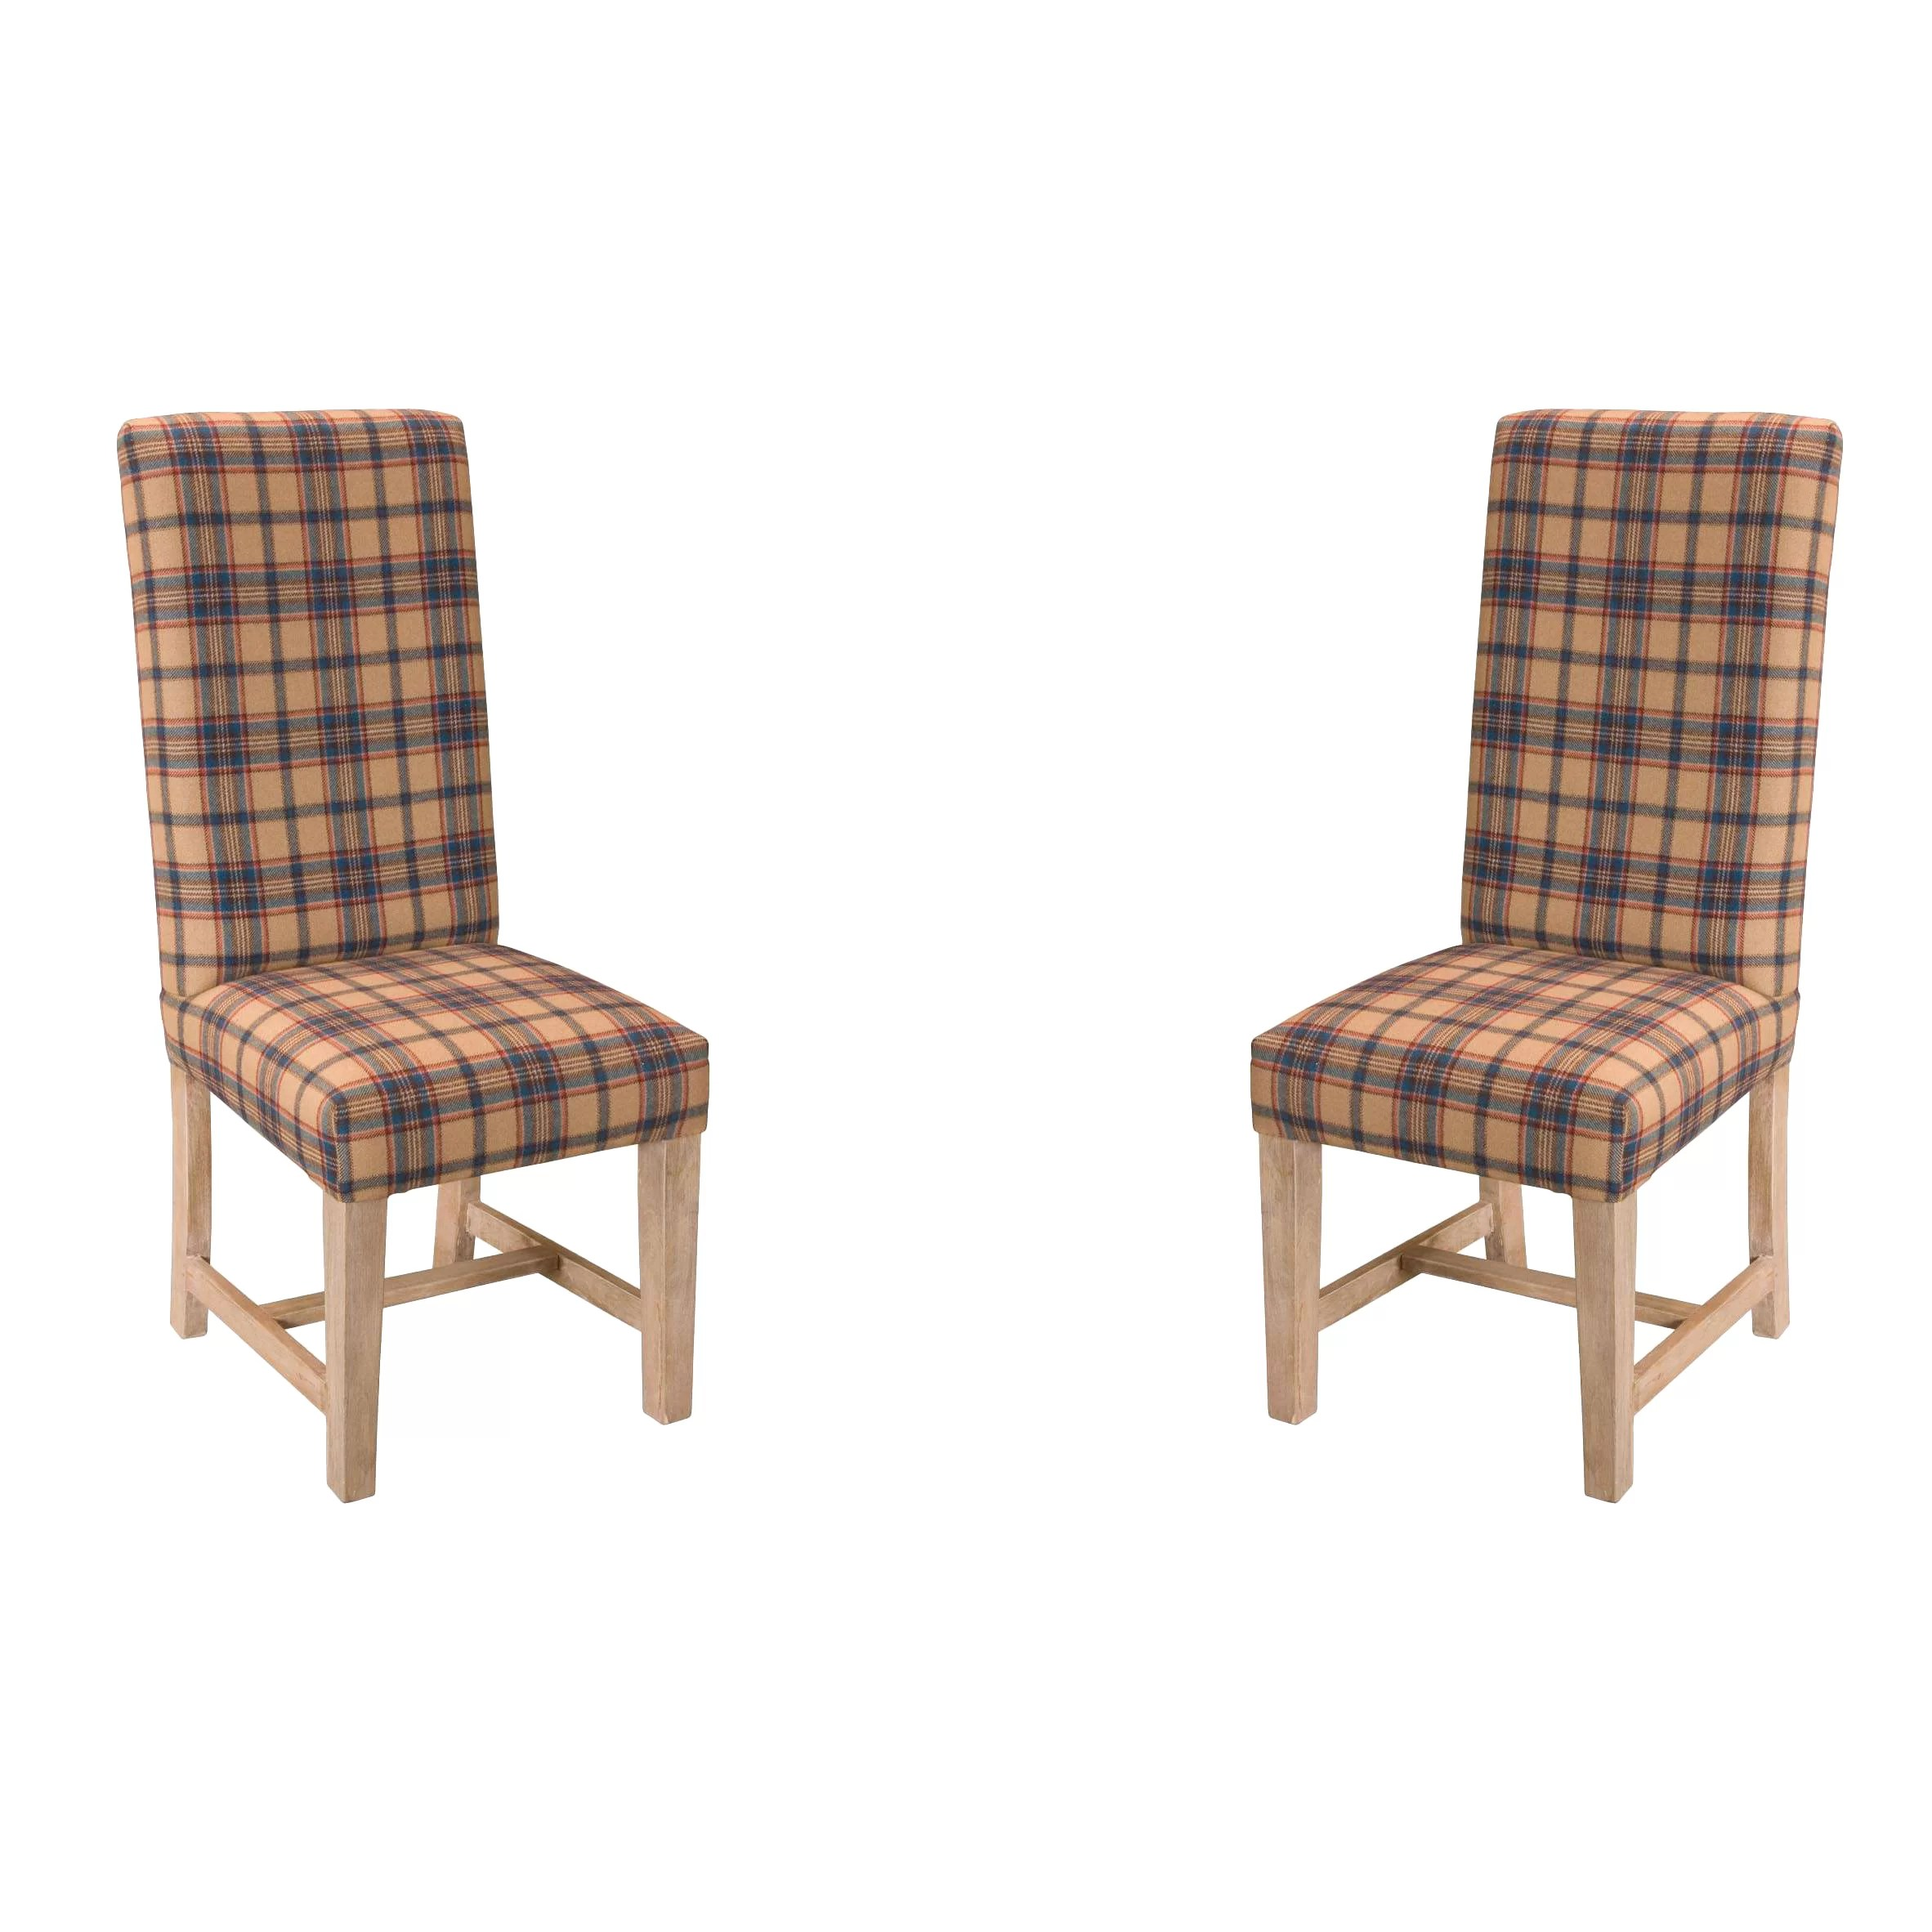 Upholstered Dining Chairs Château Chic Solid Wood Upholstered Dining Chair Wayfair Uk